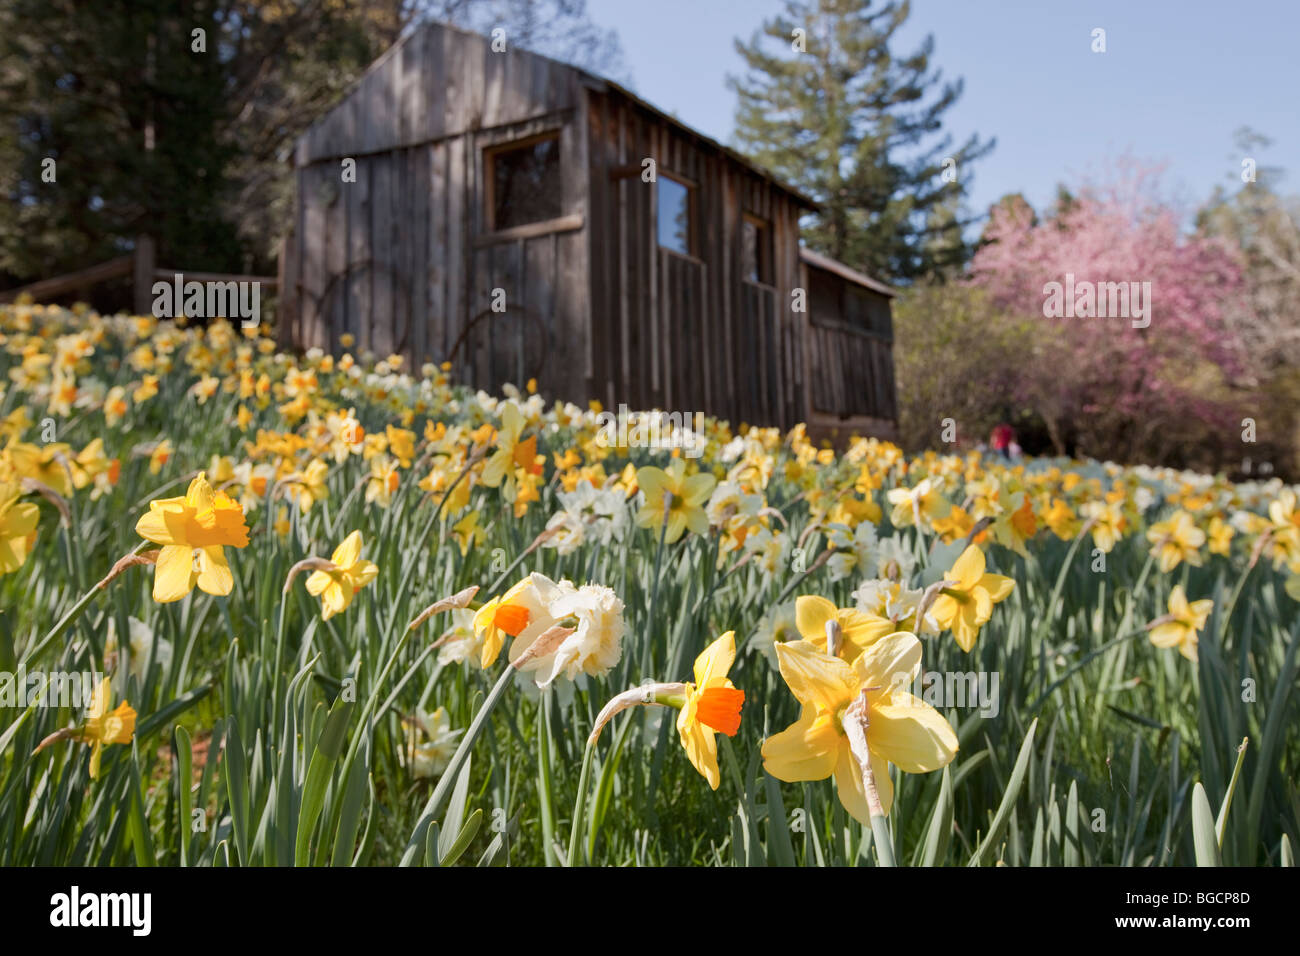 Field of daffodils with rustic building and crabapple tree with pink blossoms in full bloom in springtime, Daffodil - Stock Image